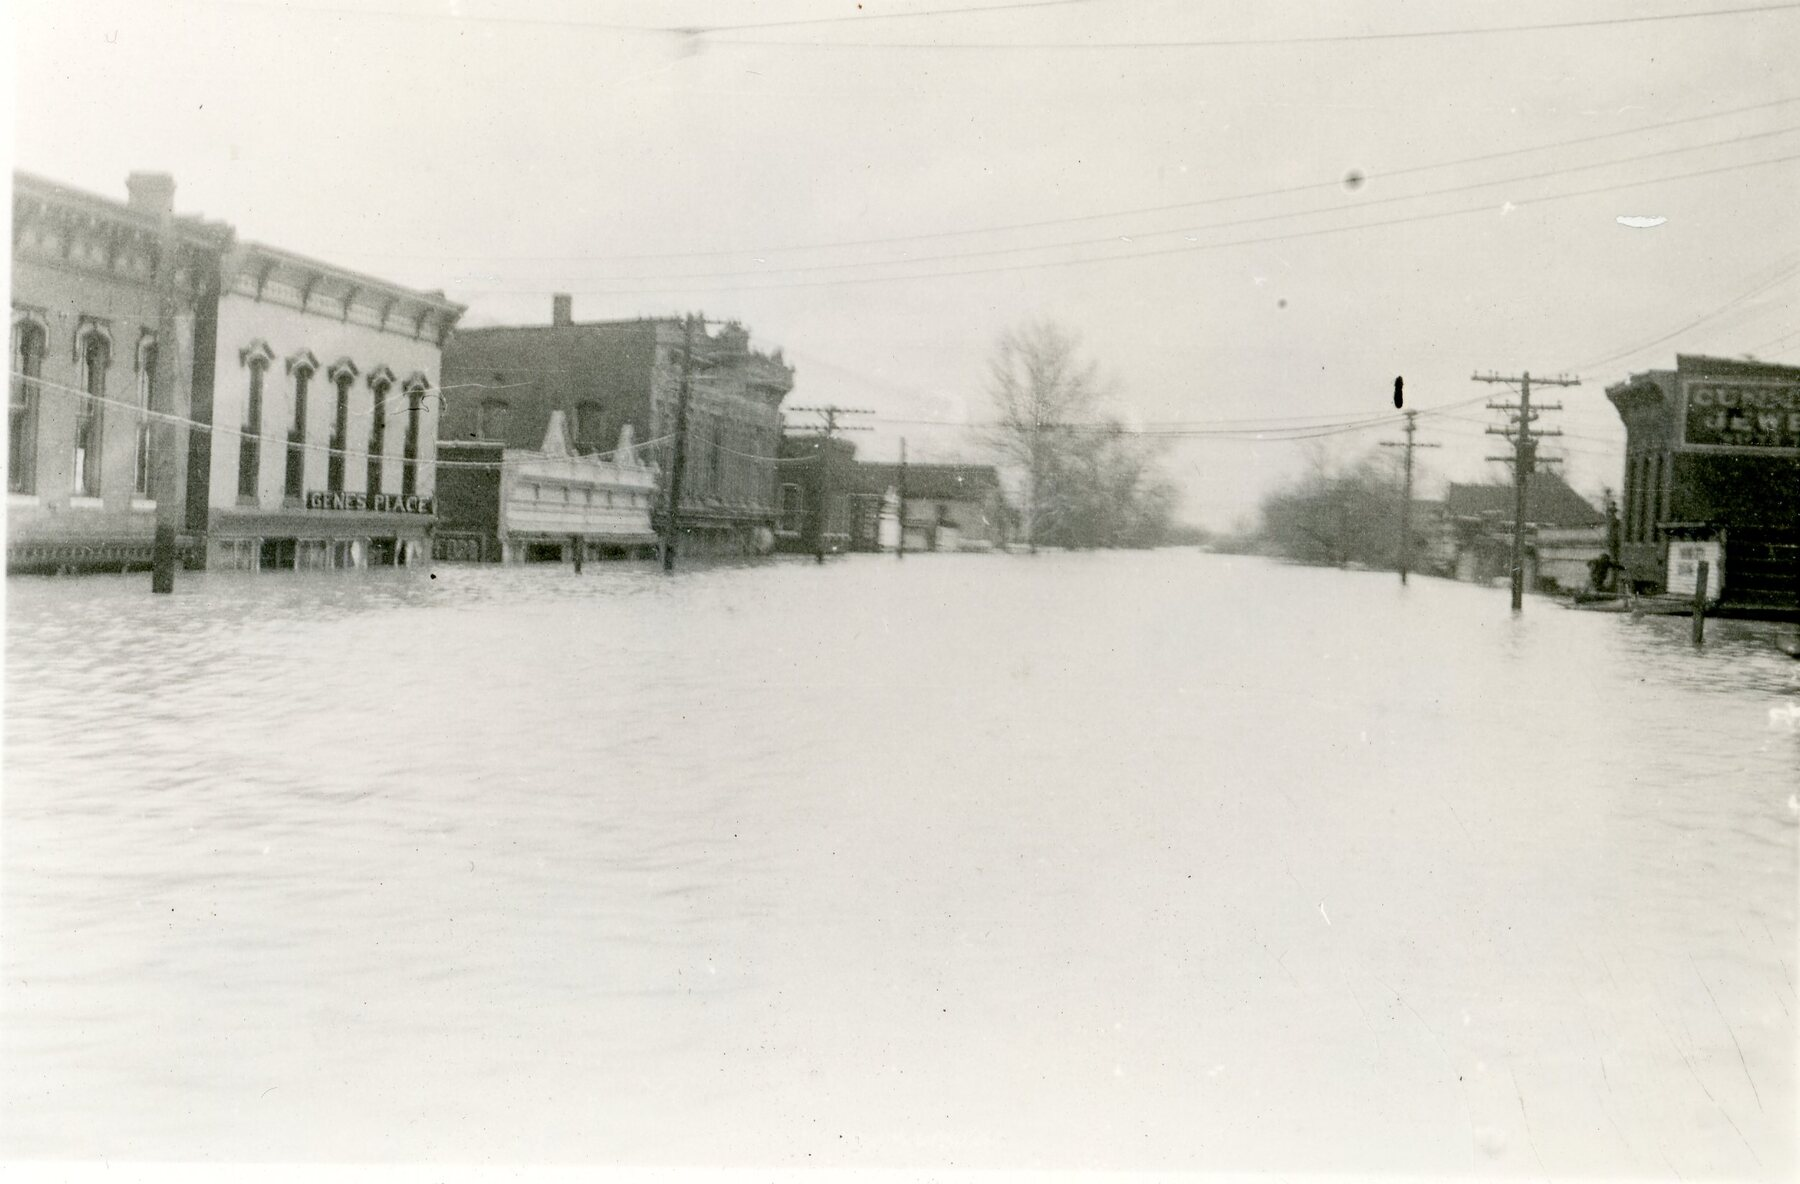 flooded street and buildings in Mound City, Illinois, in 1937